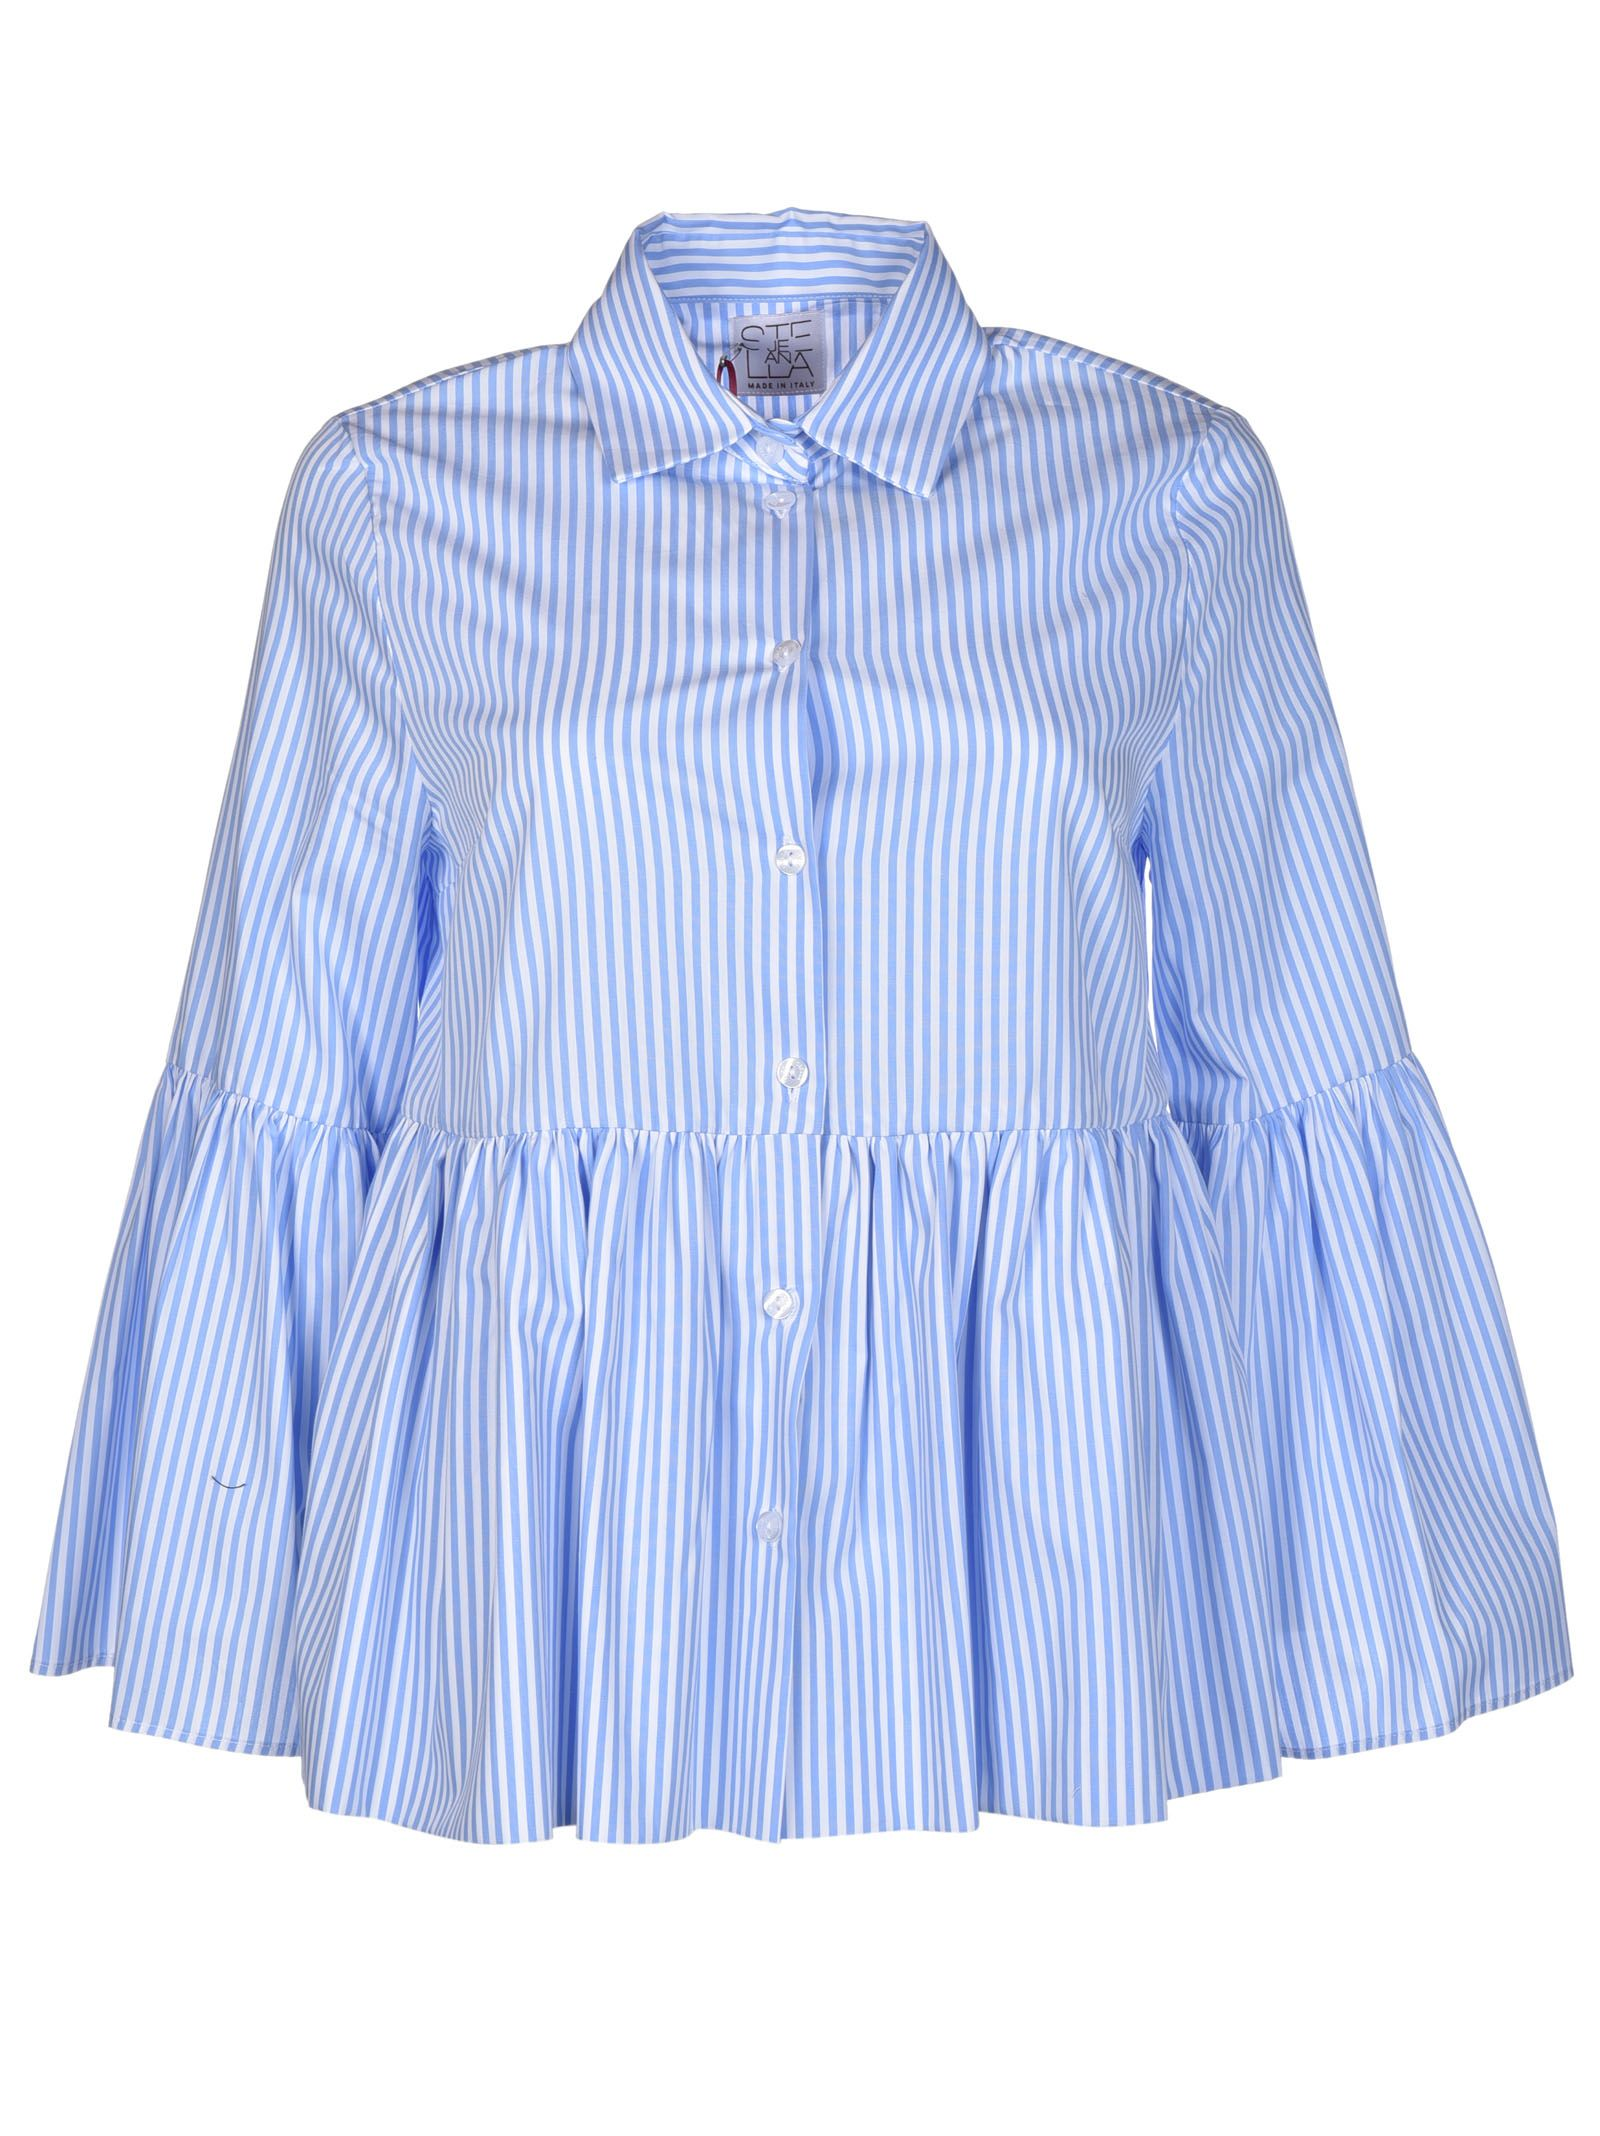 Stella Jean Imminente Striped Ruffled Shirt